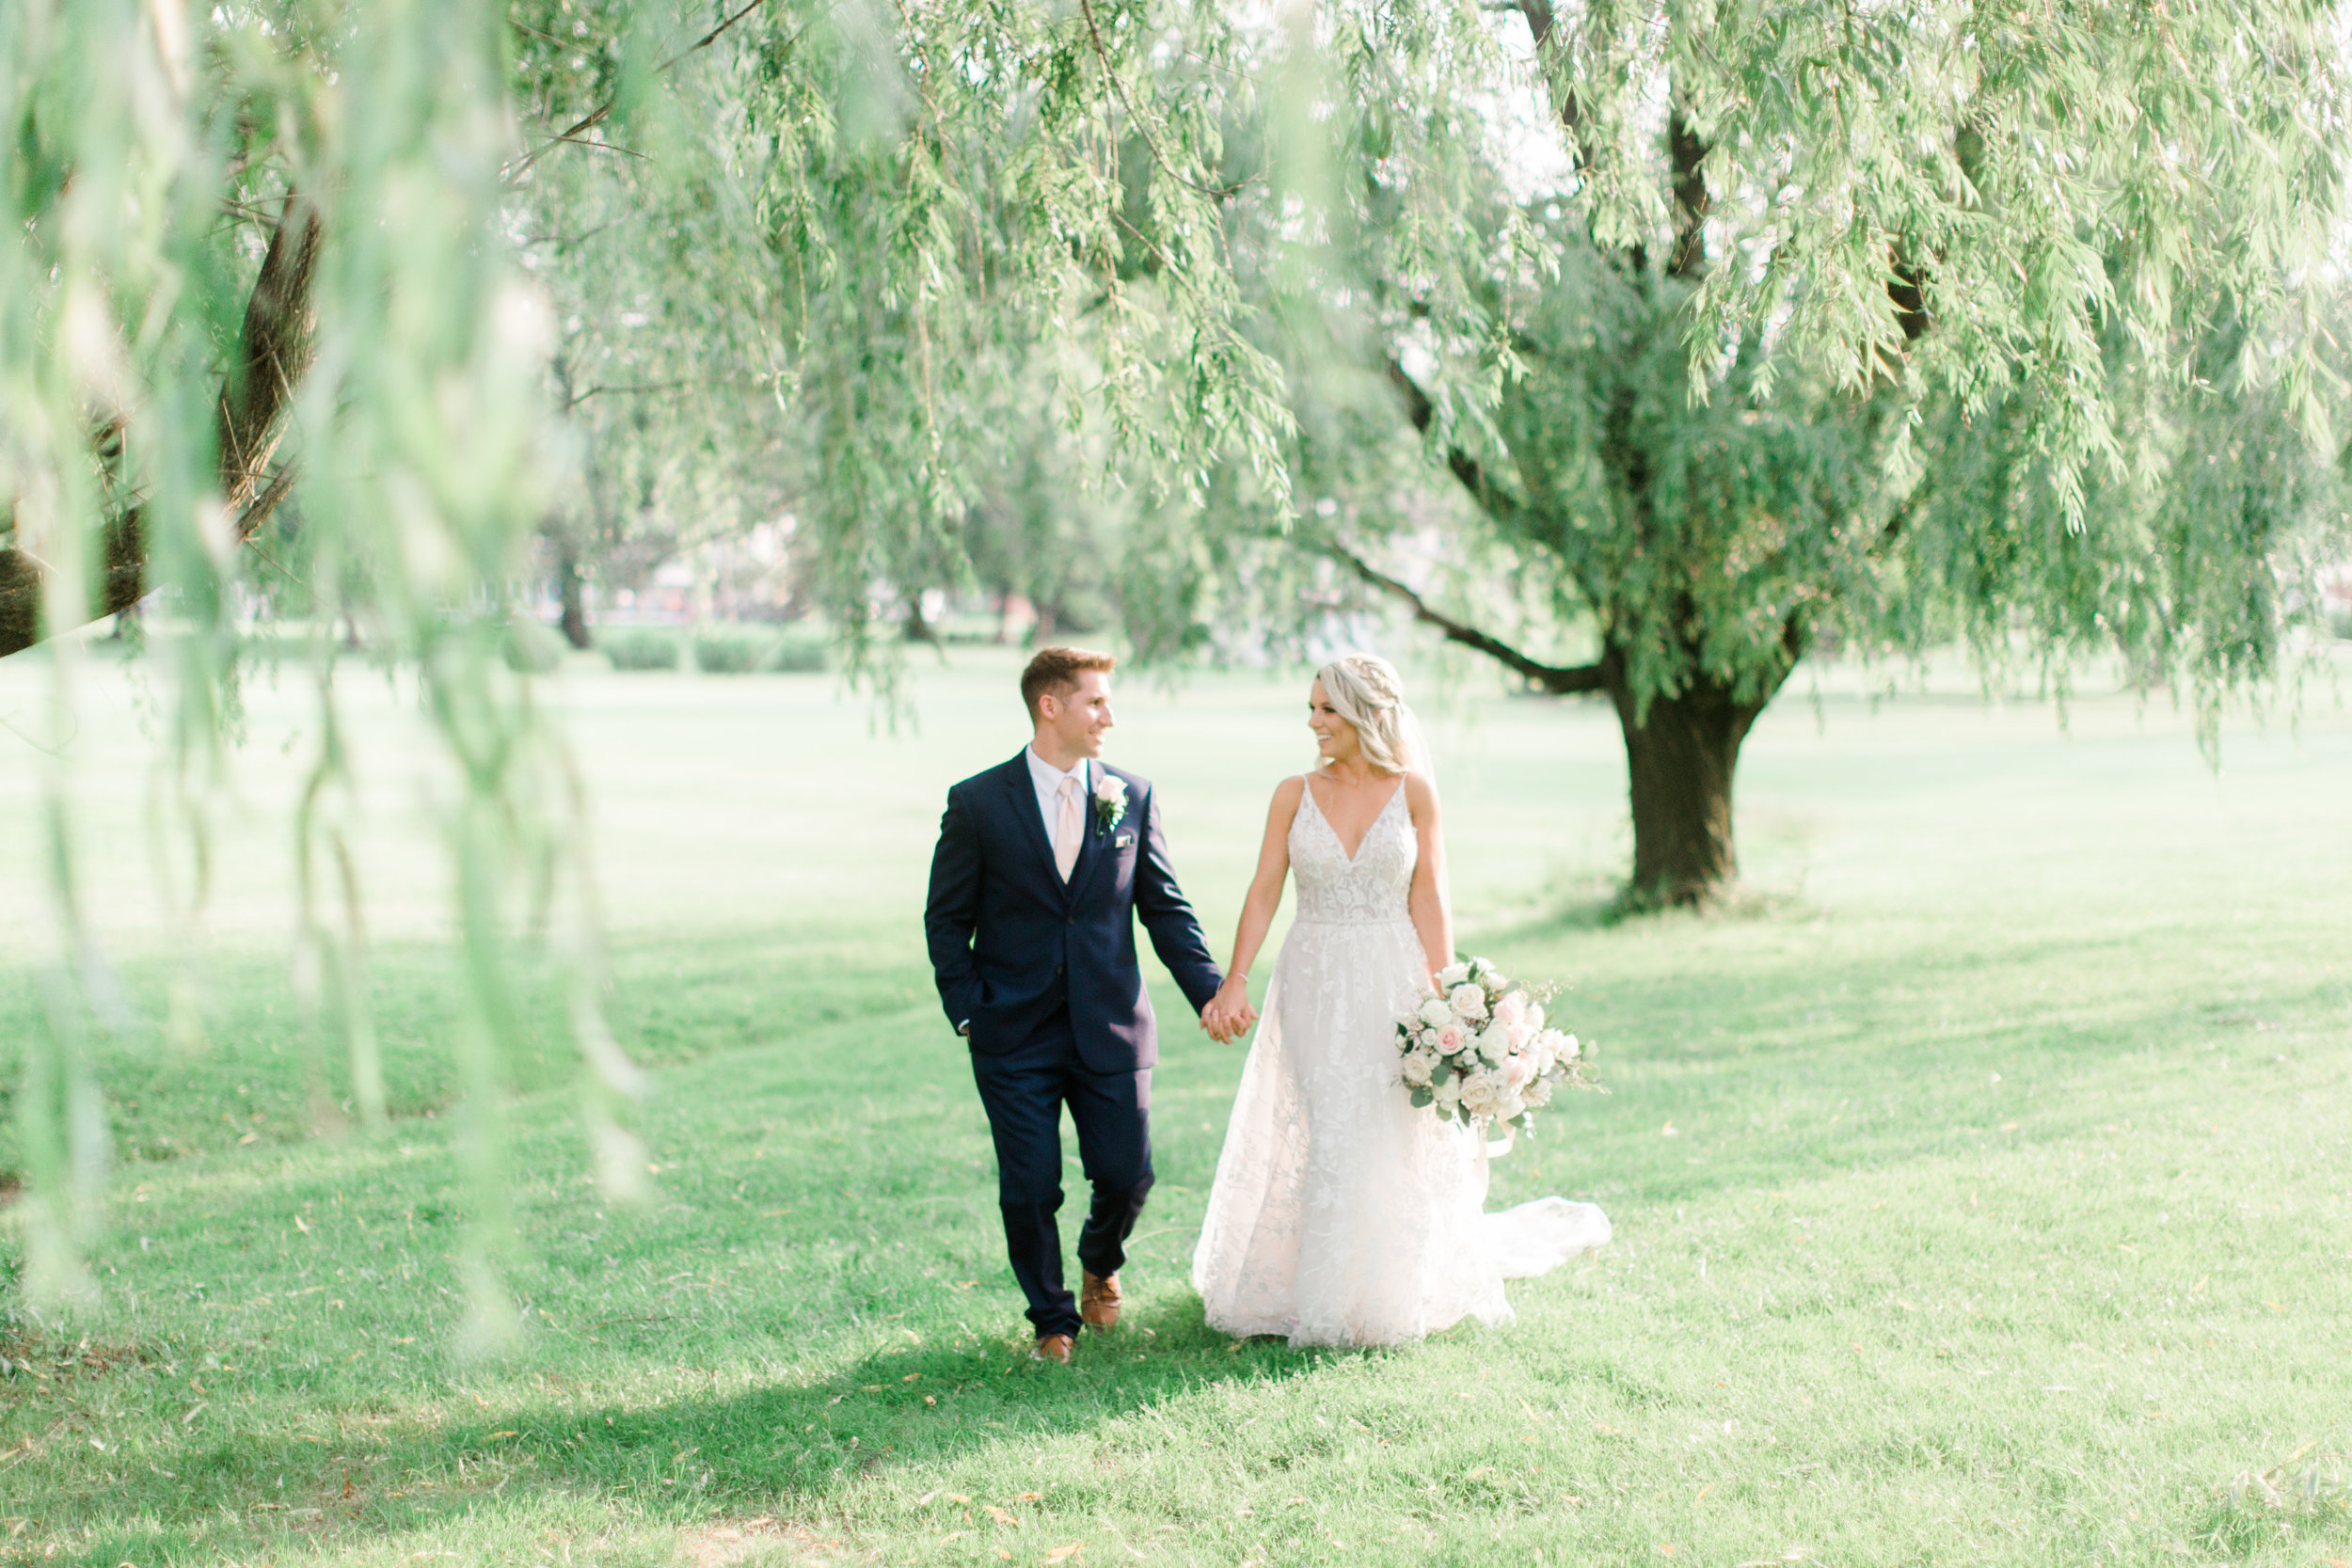 ashleyandadam_preview (6 of 7).jpg